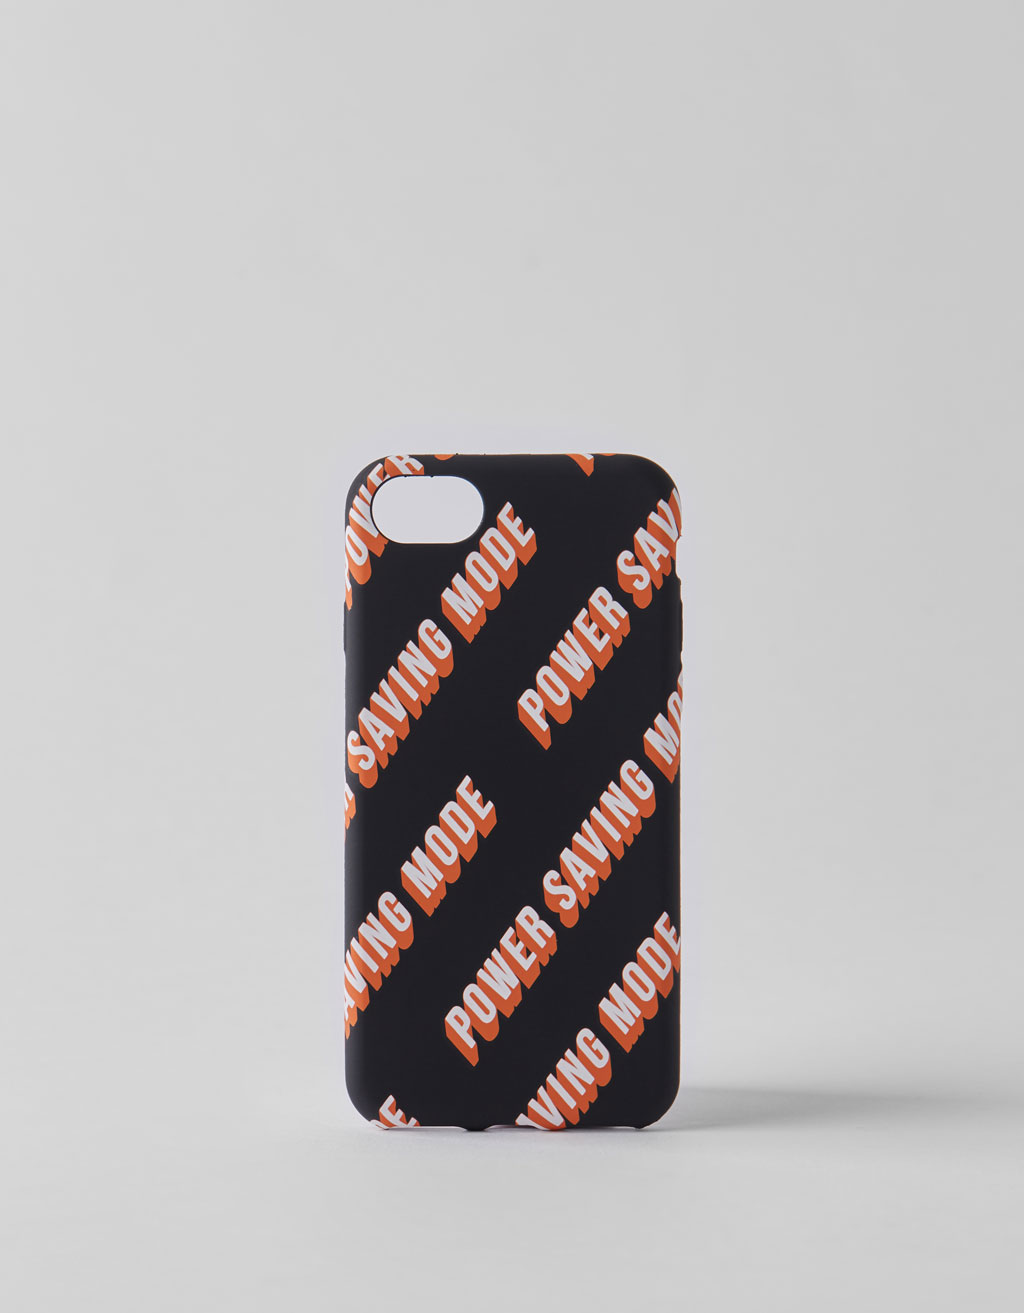 Capa estampada iPhone 6/7/8